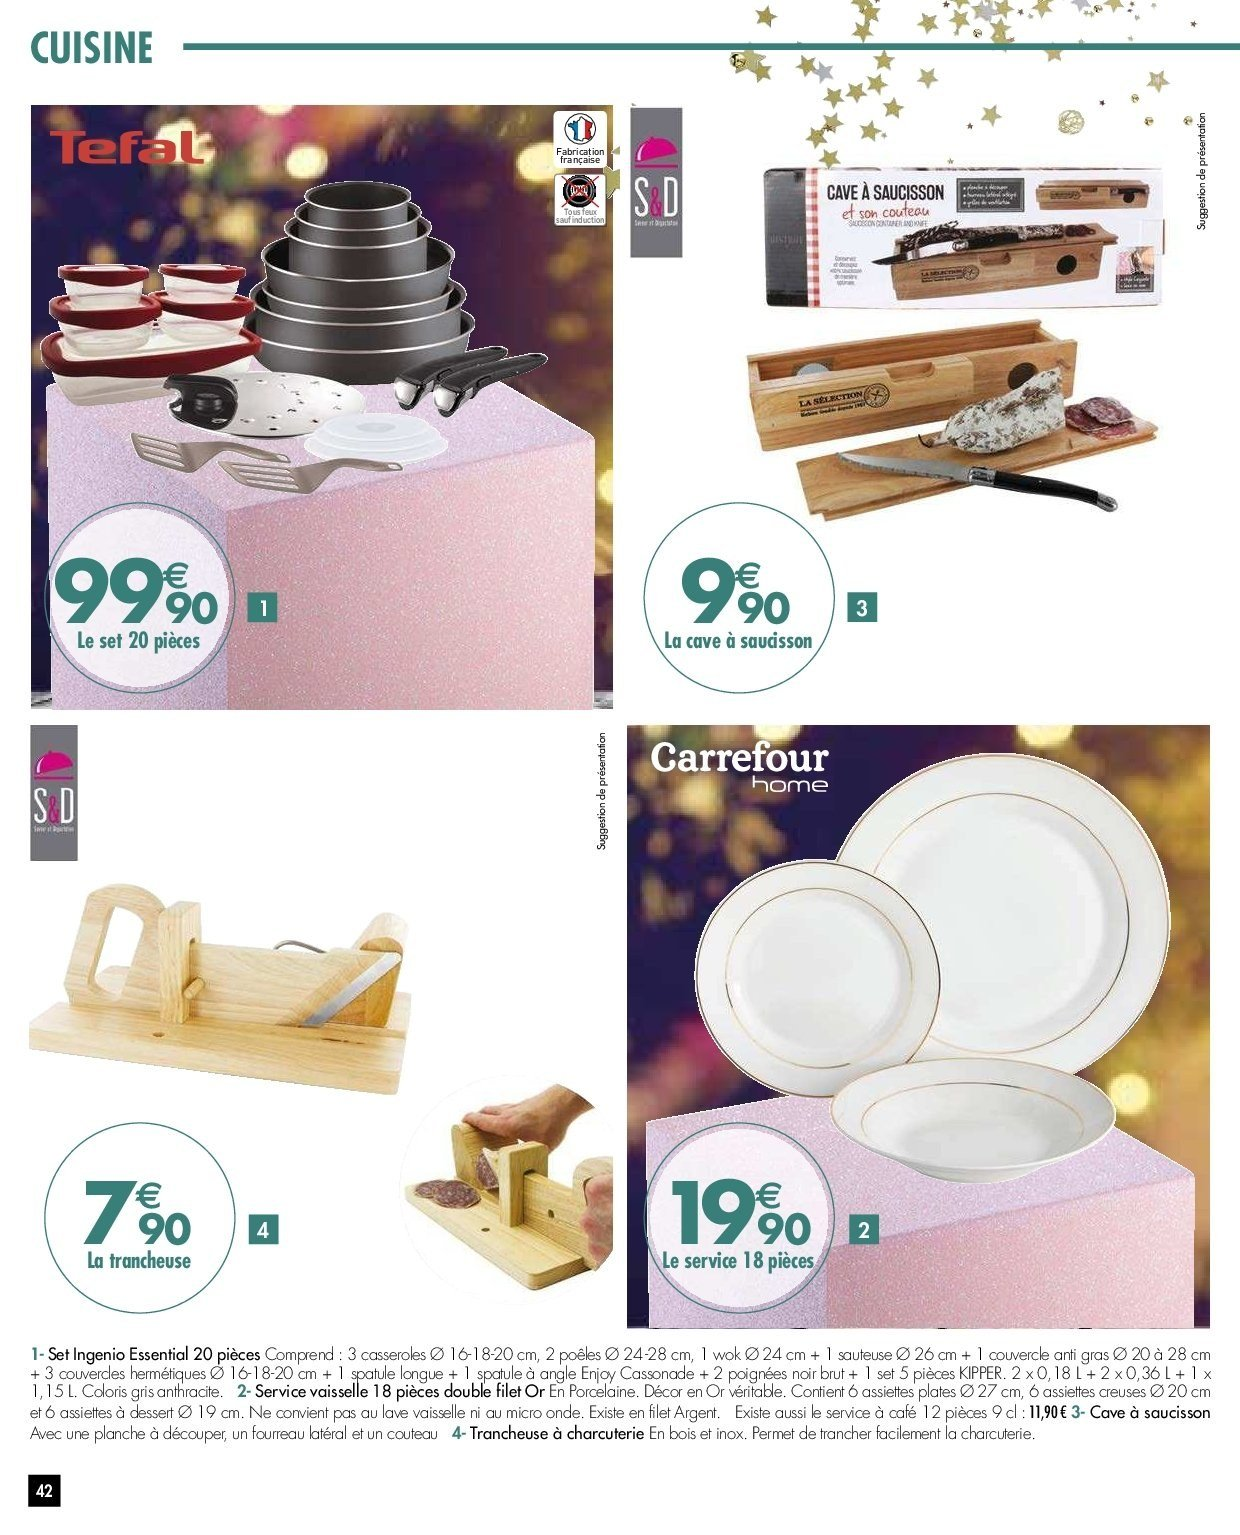 Catalogue Carrefour - 27.11.2018 - 03.12.2018. Page 42.